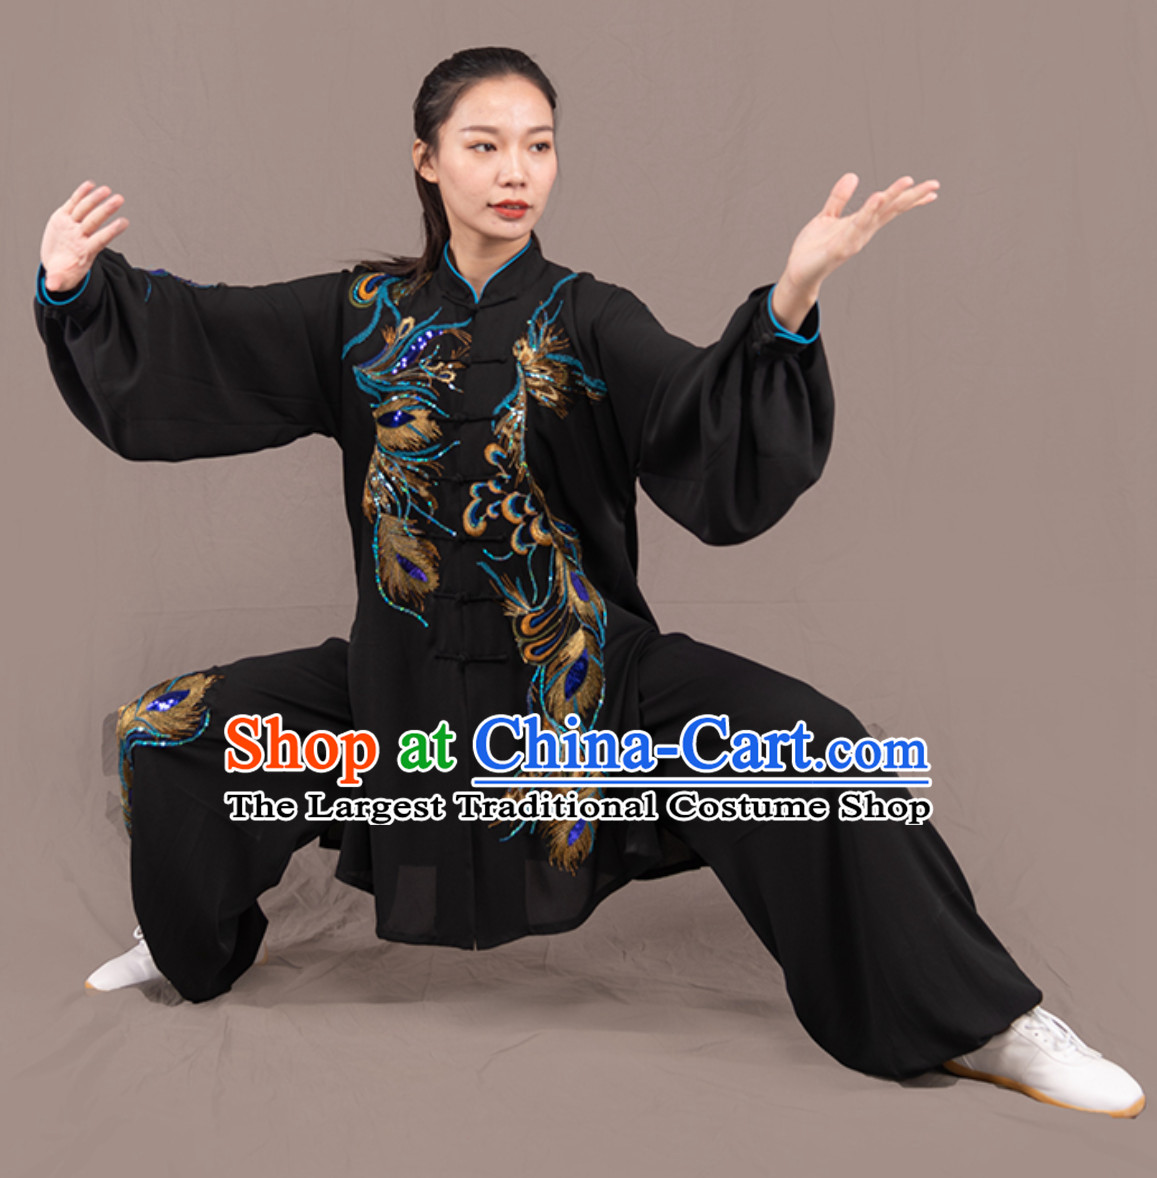 Black Top Chinese Traditional Competition Championship Professional Tai Chi Uniforms Taiji Kung Fu Wing Chun Kungfu Tai Ji Sword Gong Fu Master Clothing Suits Clothes Complete Set for Women